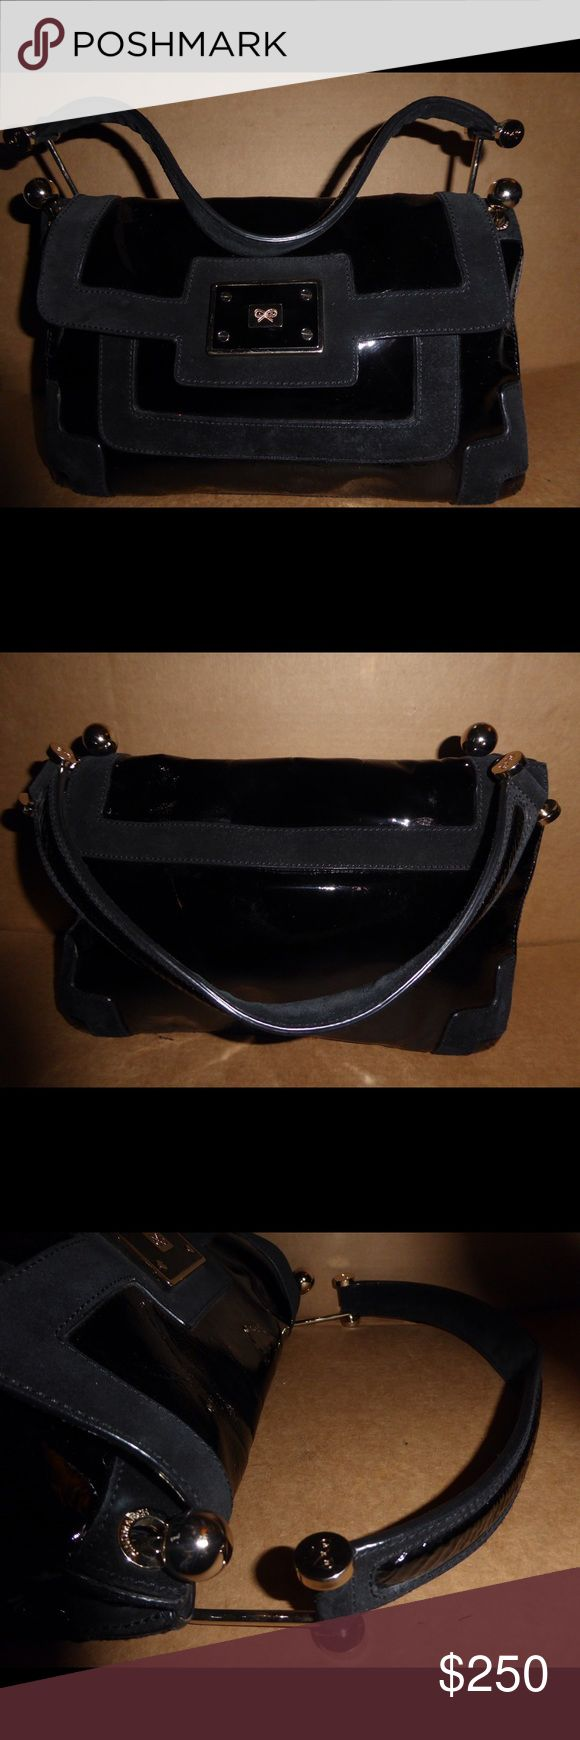 Authentic Anya Hindmarch purse Gently use and it's in good condition Anya Hindmarch Bags Hobos